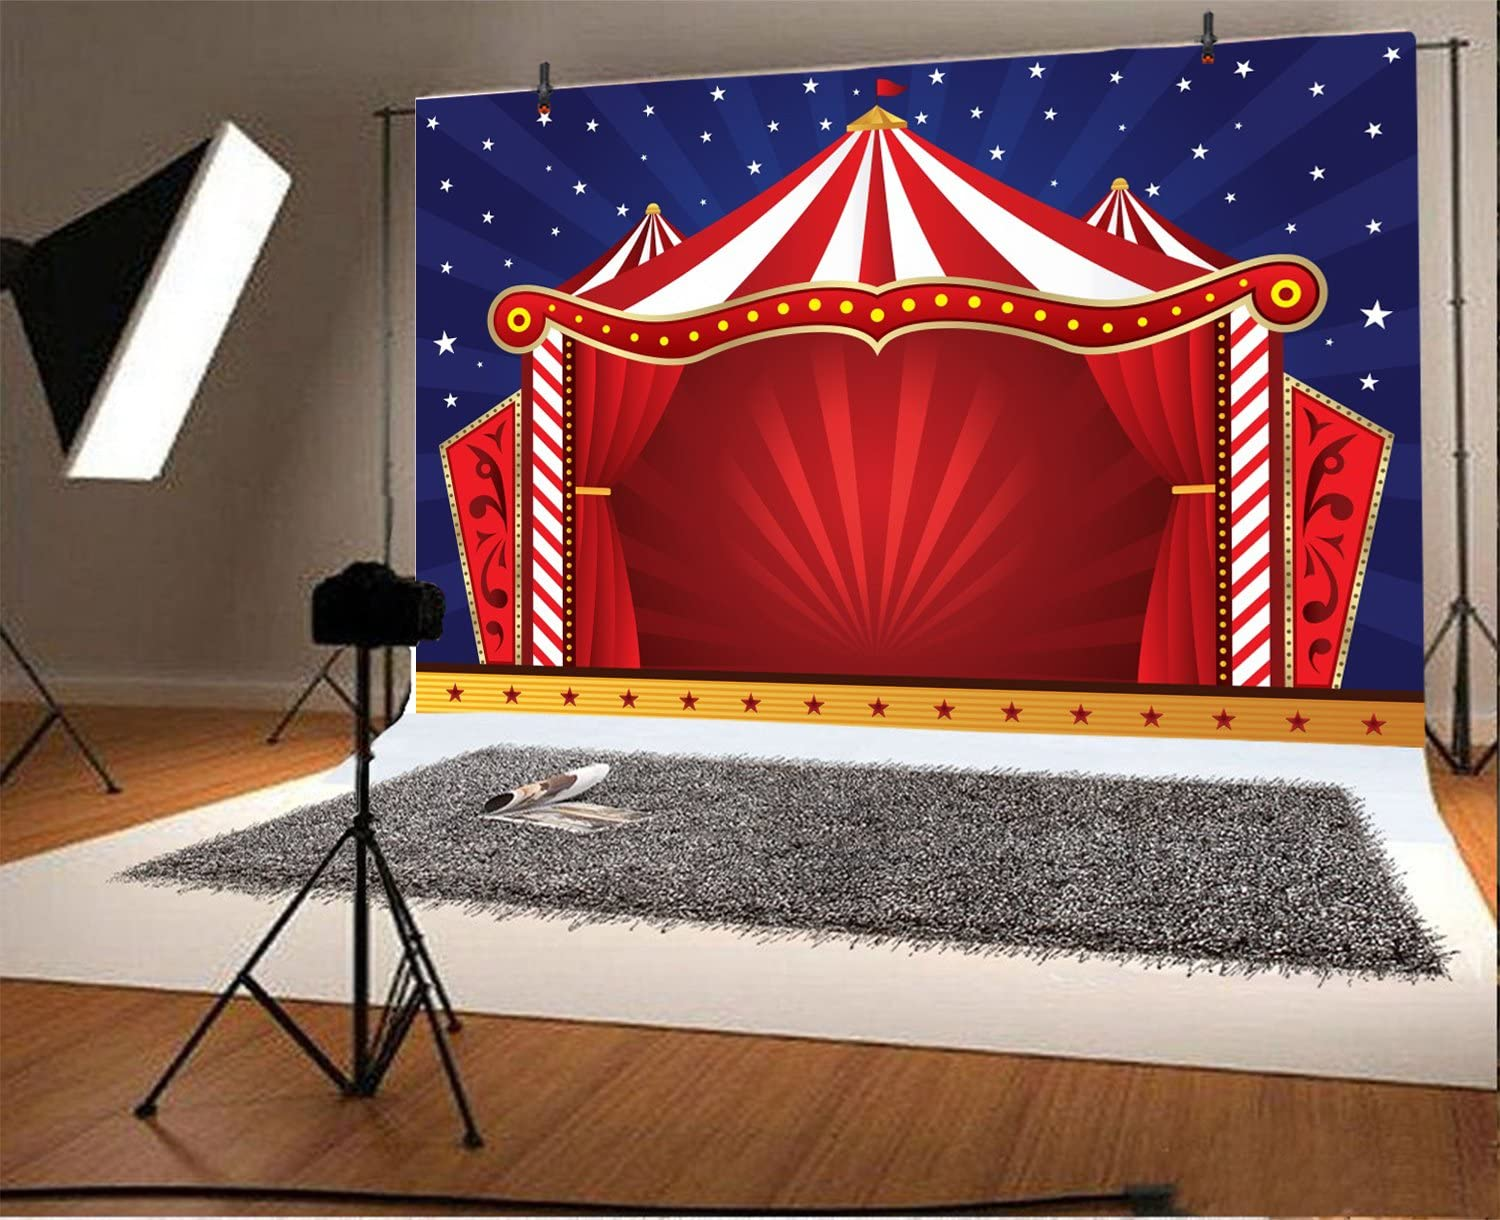 Baocicco 10x6.5ft Circus Backdrop Photography Background Red Stage Starry Sky Carnival Background Dome Banner Animal Performance Leisure Entertainment Children Party Portraits